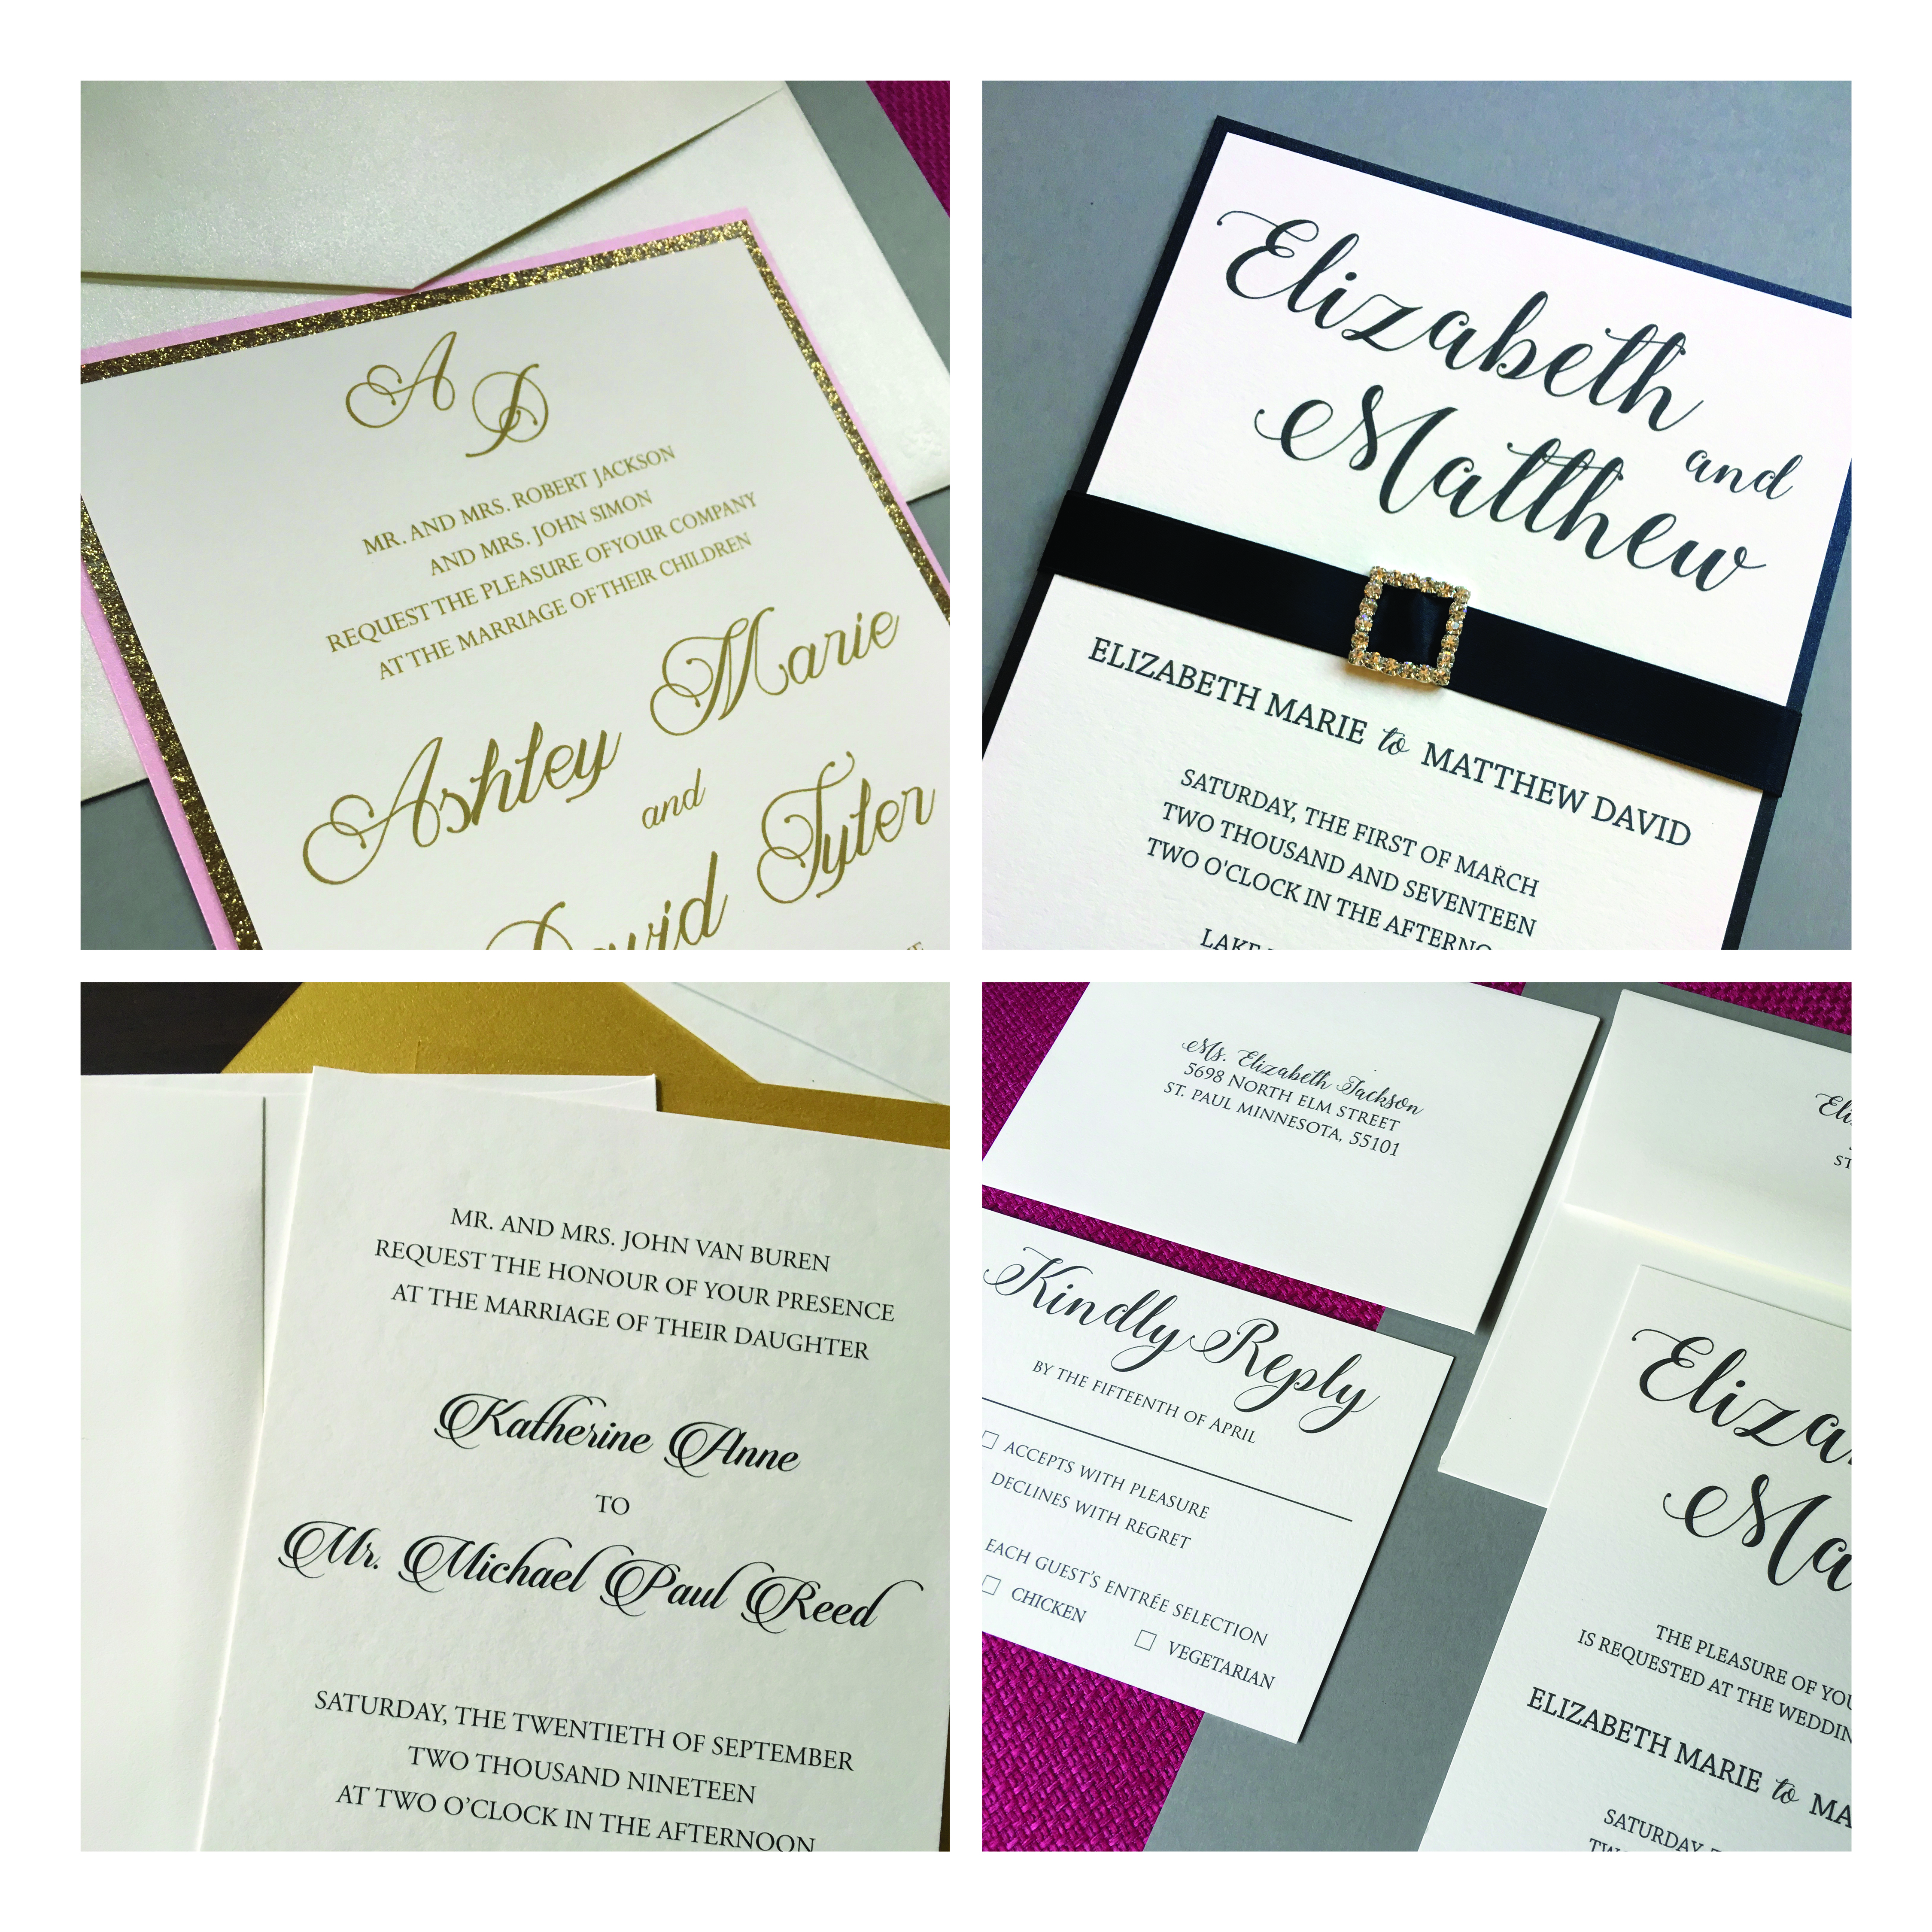 Wedding invitations Lafayette Papers